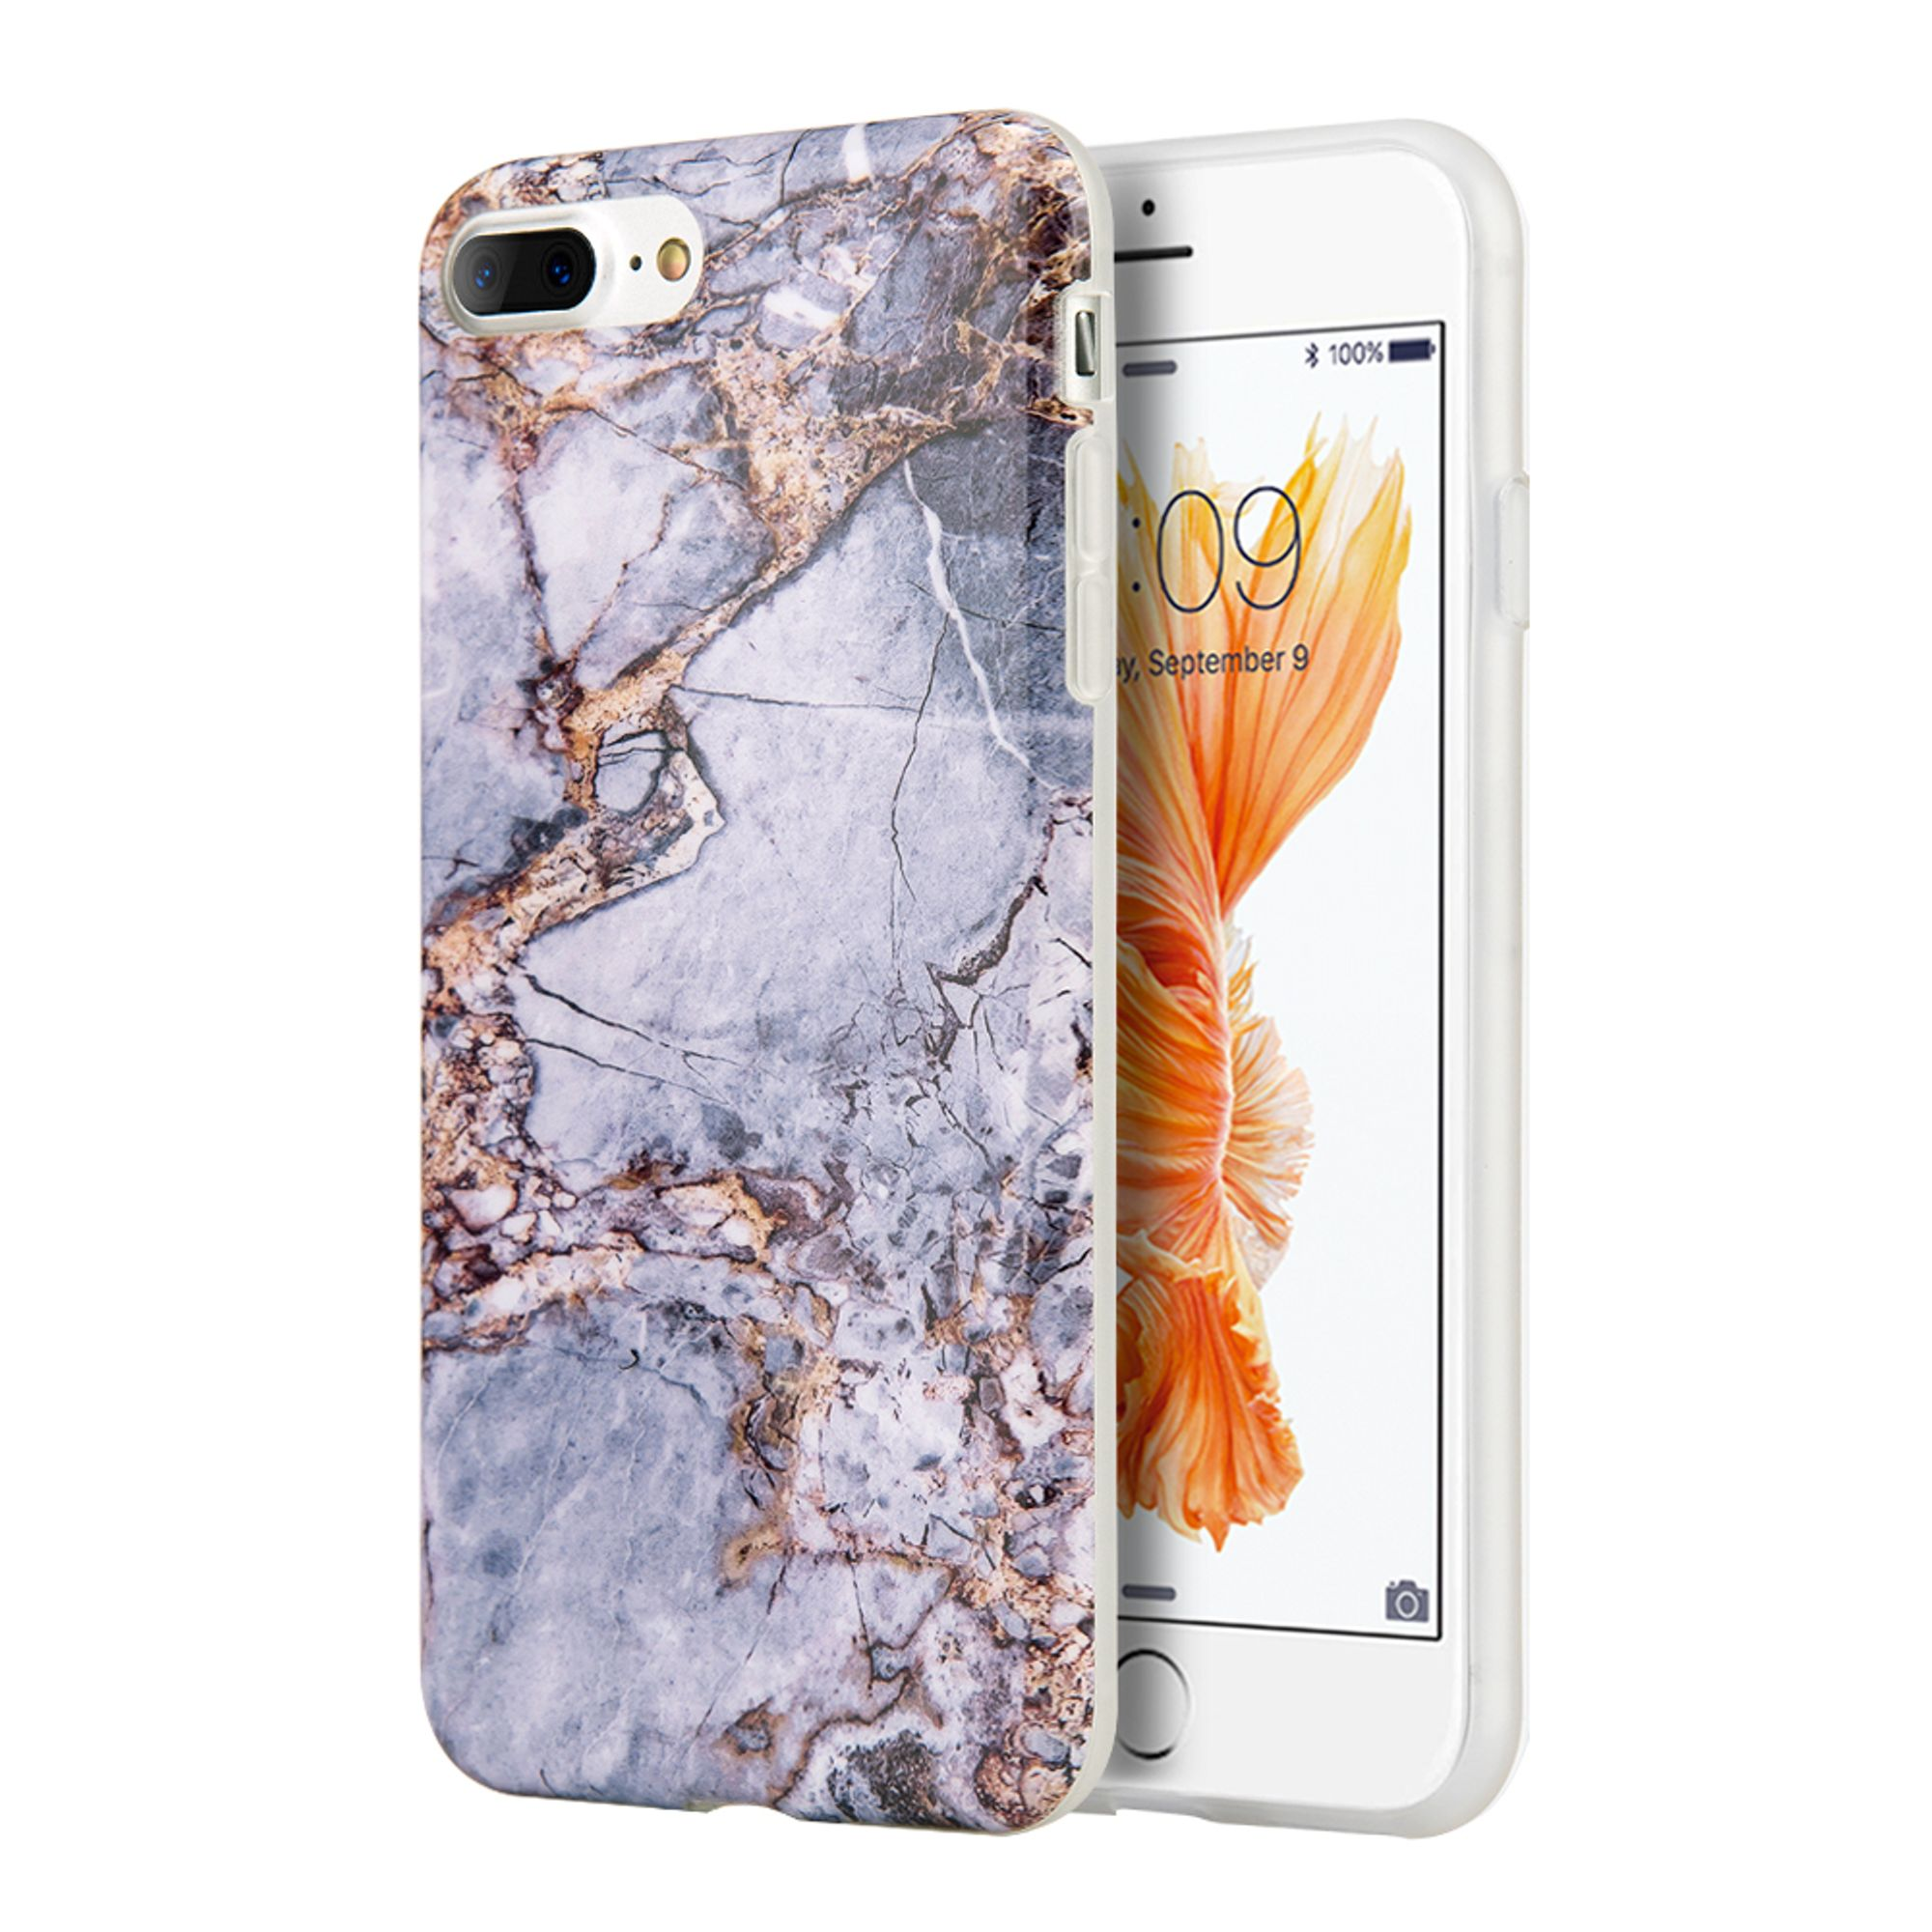 Insten Marble TPU Cover Case for Apple iPhone 8 Plus / iPhone 7 Plus - Gray/Gold